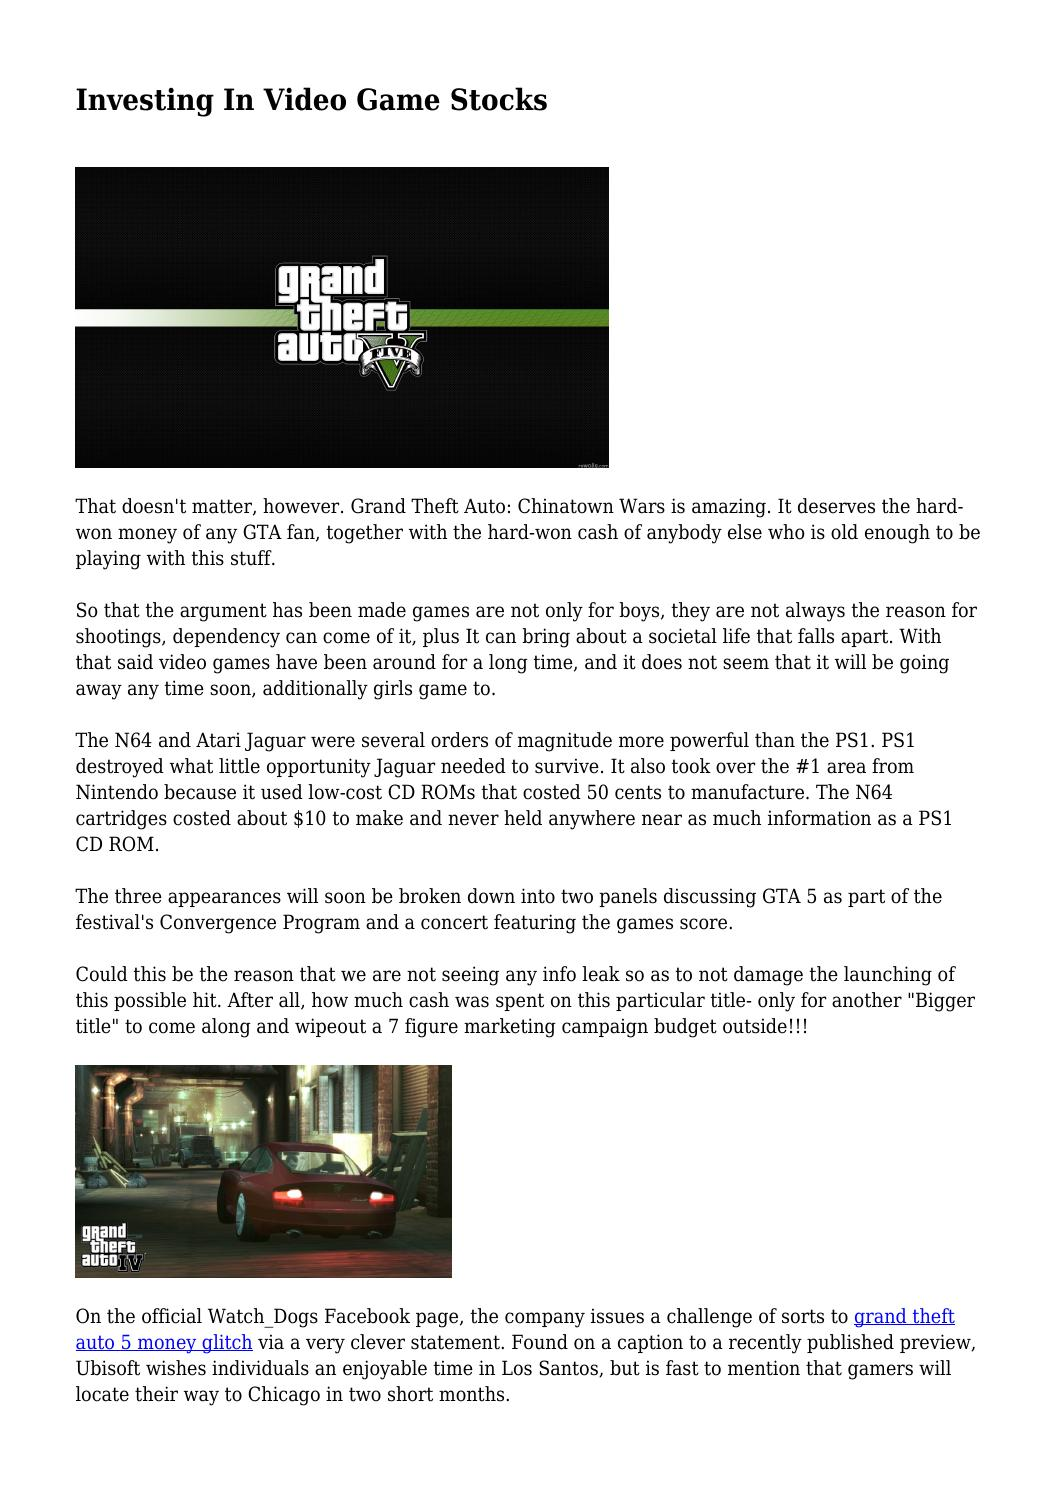 Investing In Video Game Stocks by middletonuicvyoxfoh - issuu